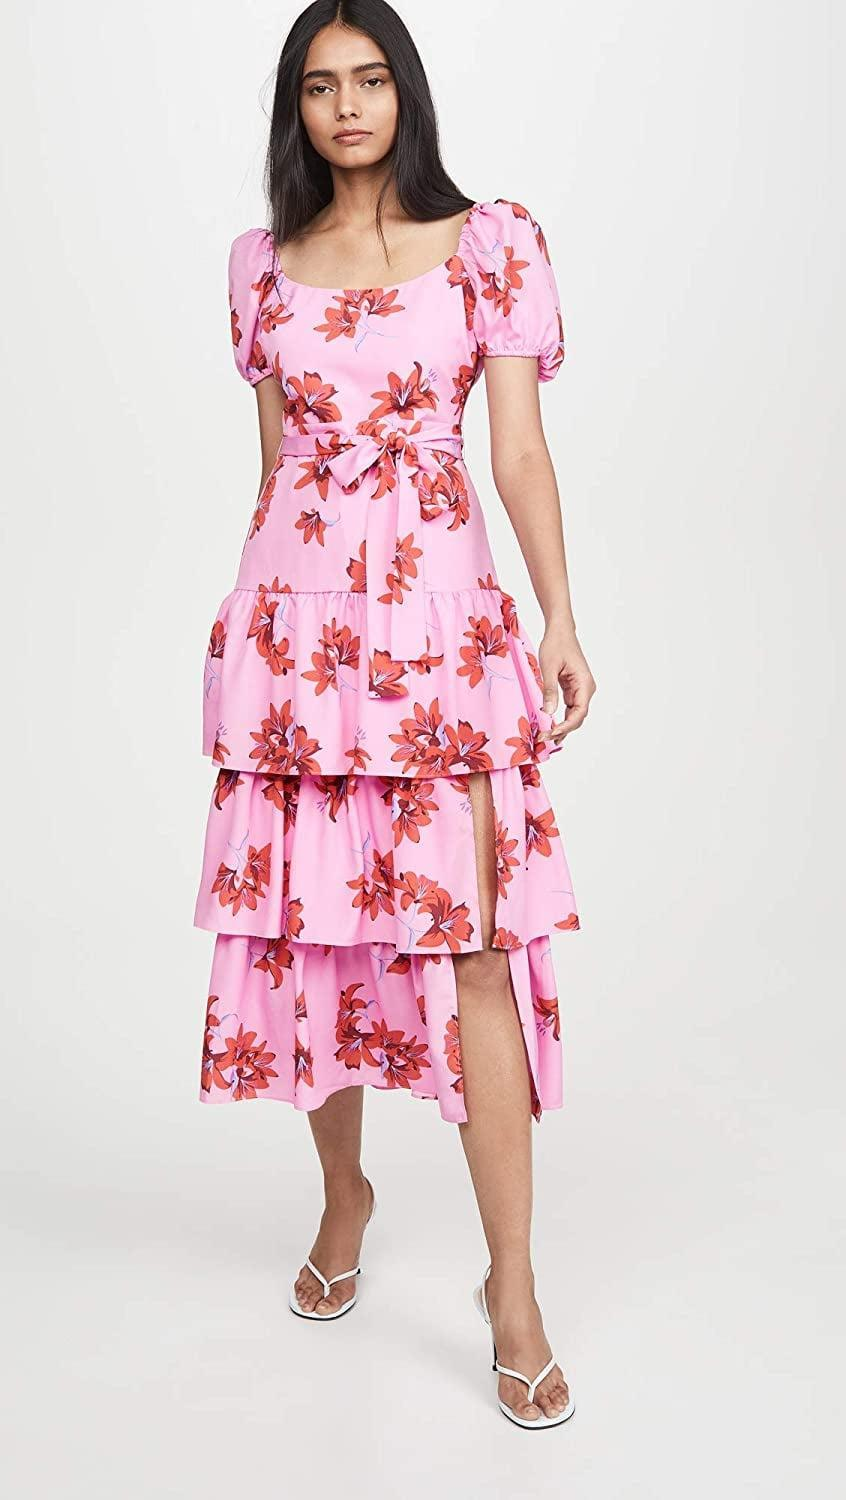 "<p><a href=""https://www.popsugar.com/buy/Likely-Lottie-Dress-583719?p_name=Likely%20Lottie%20Dress&retailer=amazon.com&pid=583719&price=103&evar1=fab%3Aus&evar9=47563146&evar98=https%3A%2F%2Fwww.popsugar.com%2Ffashion%2Fphoto-gallery%2F47563146%2Fimage%2F47564546%2FLikely-Lottie-Dress&list1=shopping%2Camazon%2Cfashion%20news%2Csummer%20fashion%2Csale%20shopping%2Cfashion%20shopping&prop13=api&pdata=1"" class=""link rapid-noclick-resp"" rel=""nofollow noopener"" target=""_blank"" data-ylk=""slk:Likely Lottie Dress"">Likely Lottie Dress</a> ($103, originally $228)</p>"